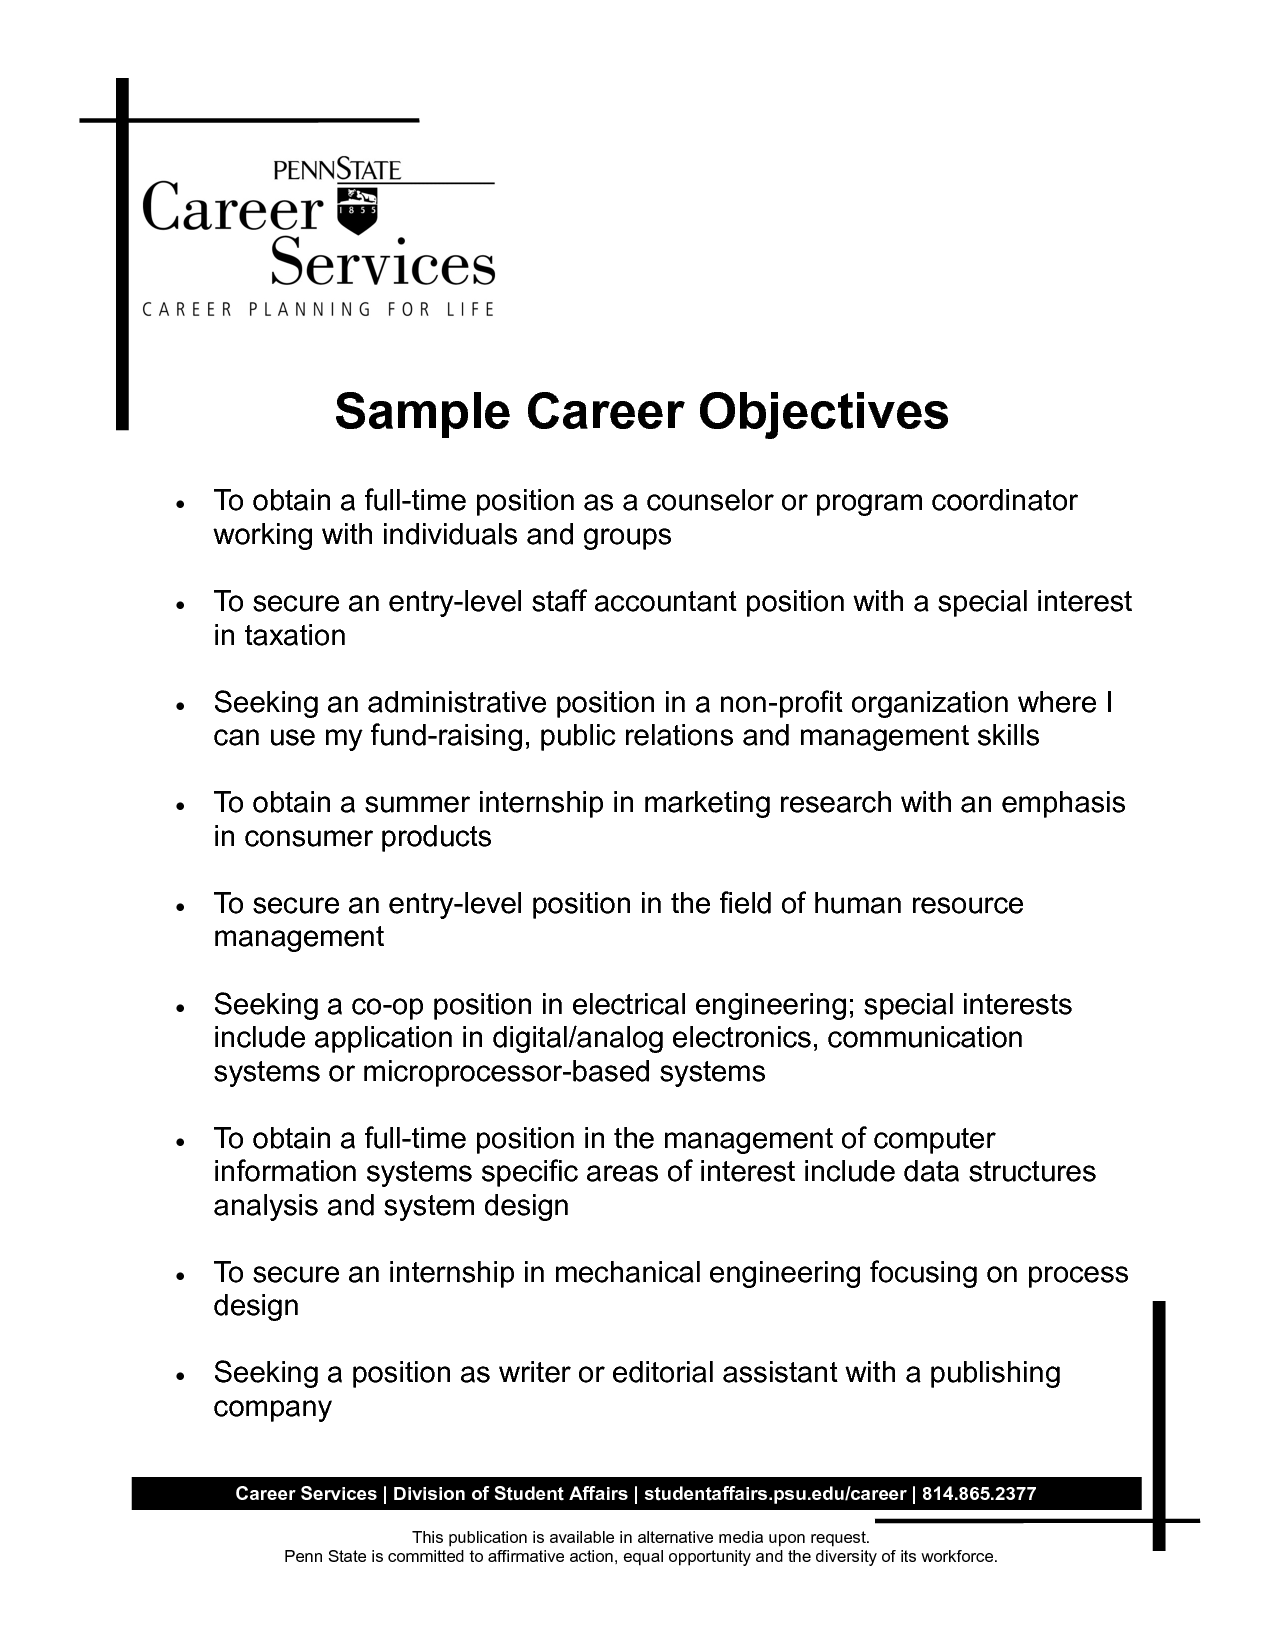 How to Write Career Objective With Sample  SampleBusinessResume.com : SampleBusinessResume.com